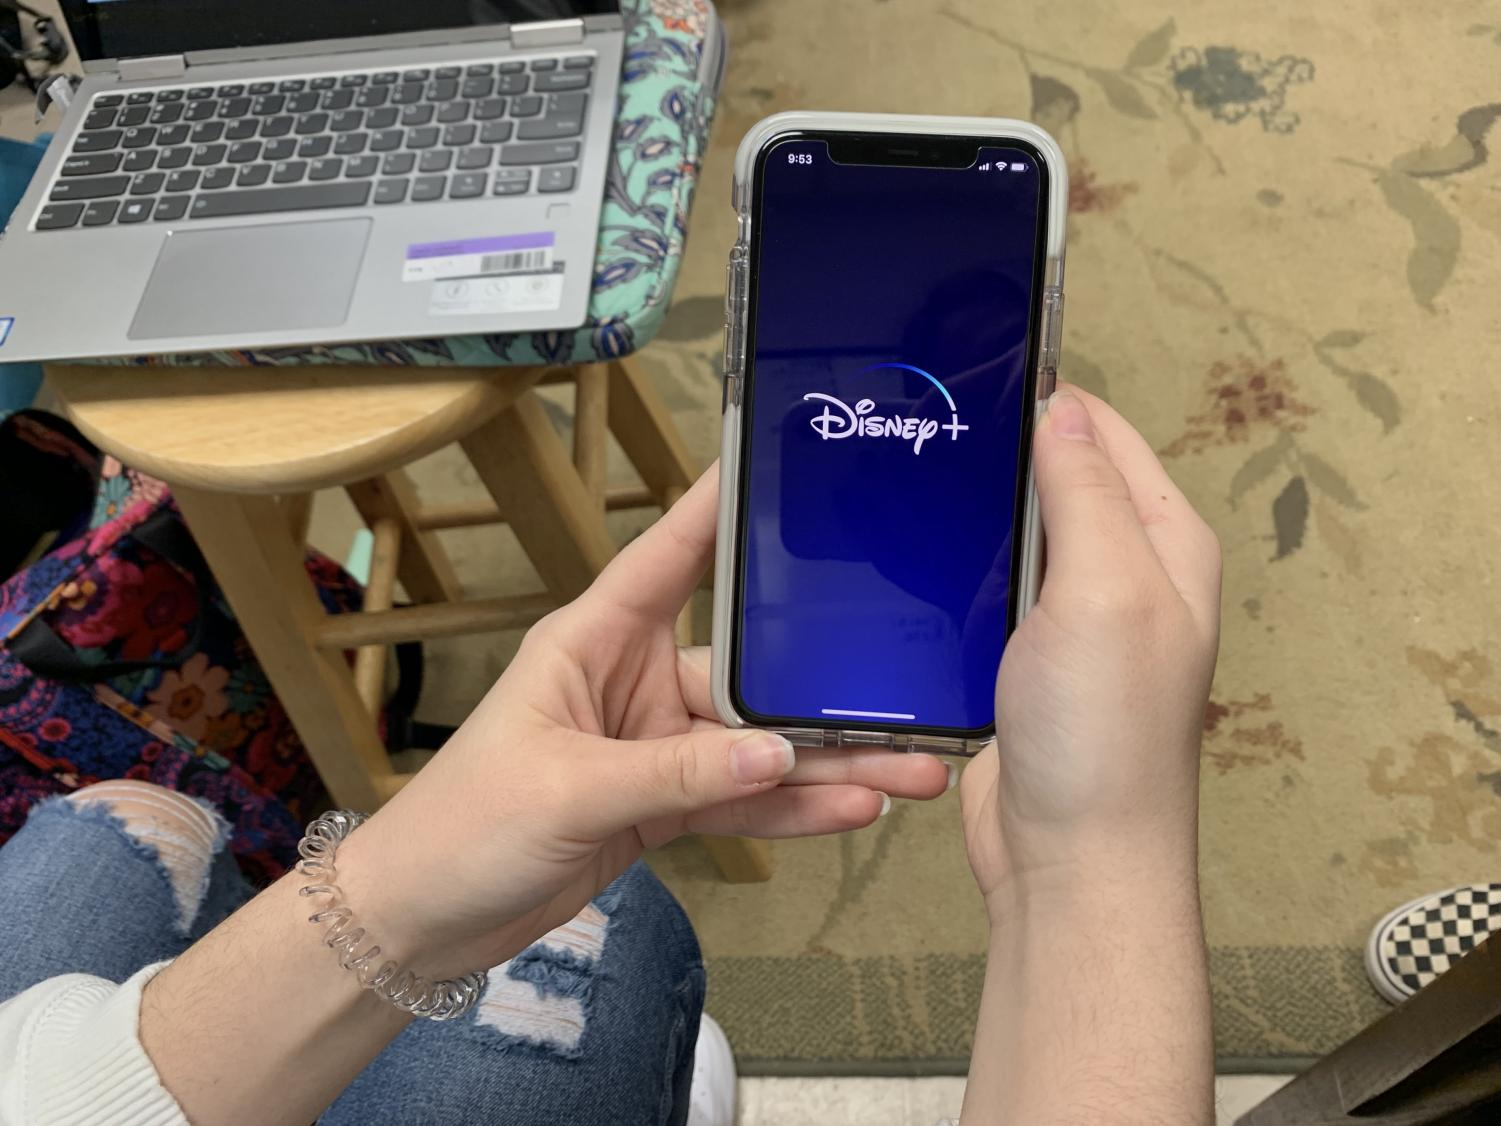 Disney+ can be accessed from mobile devices.